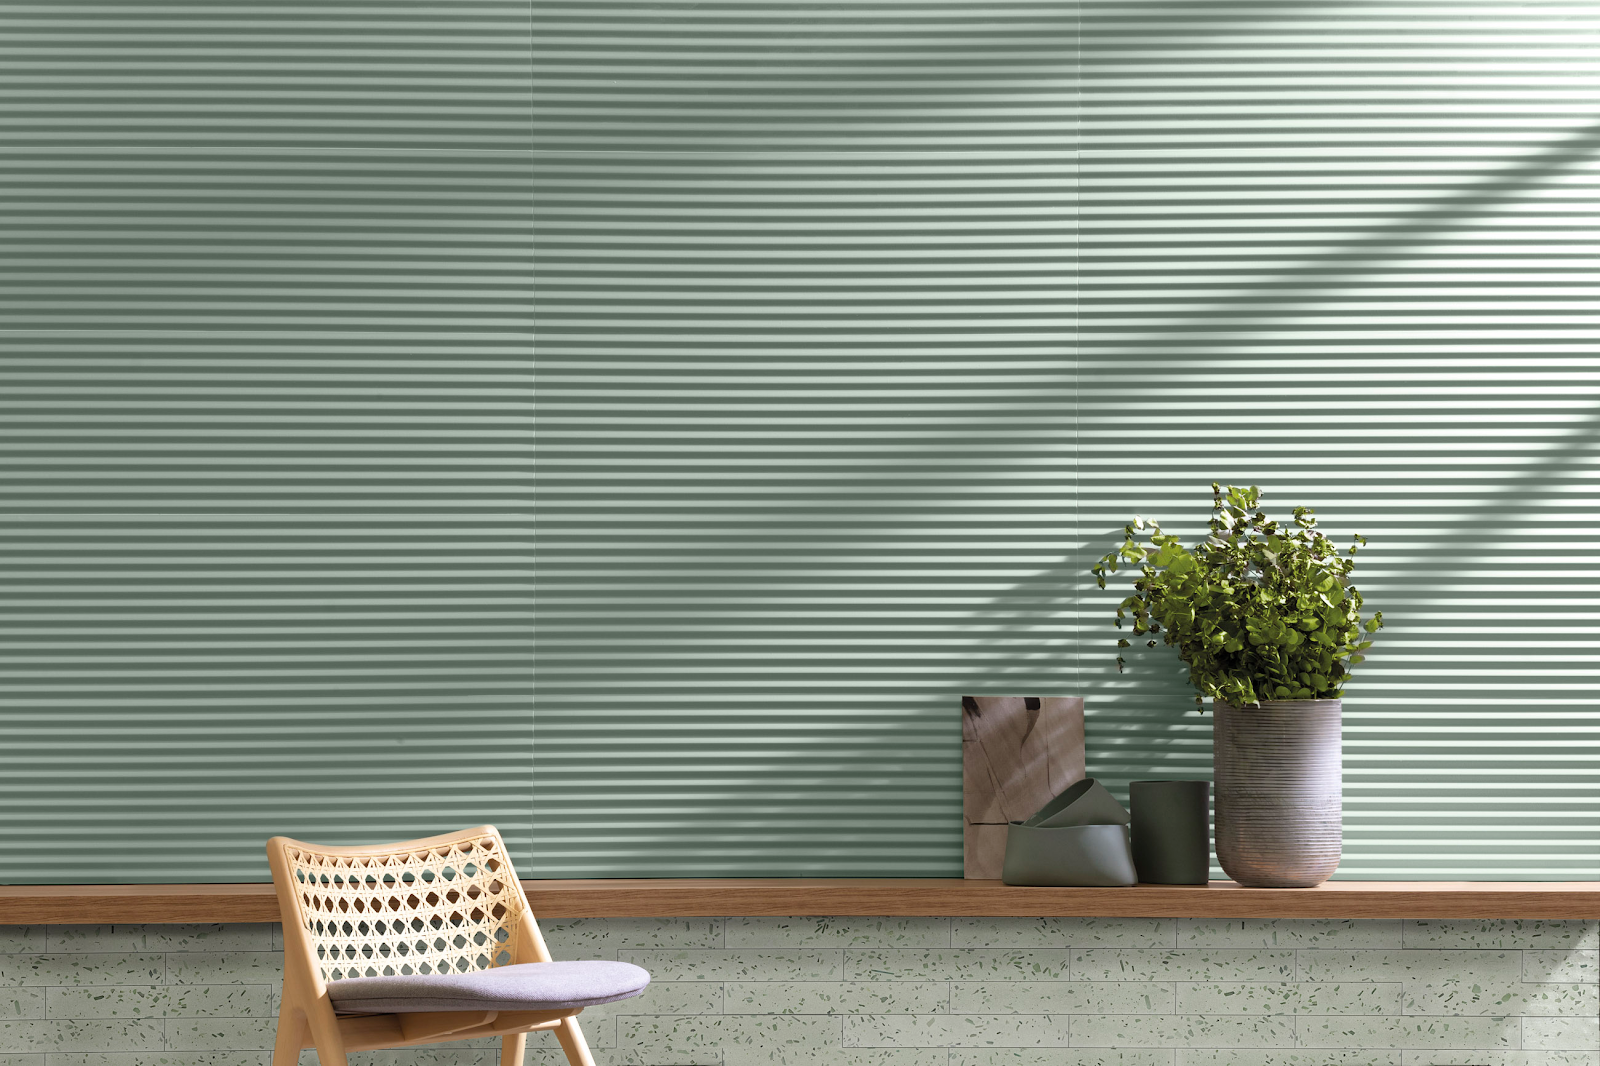 Mint green tile in a 3D ridged design and a terrazzo-look design